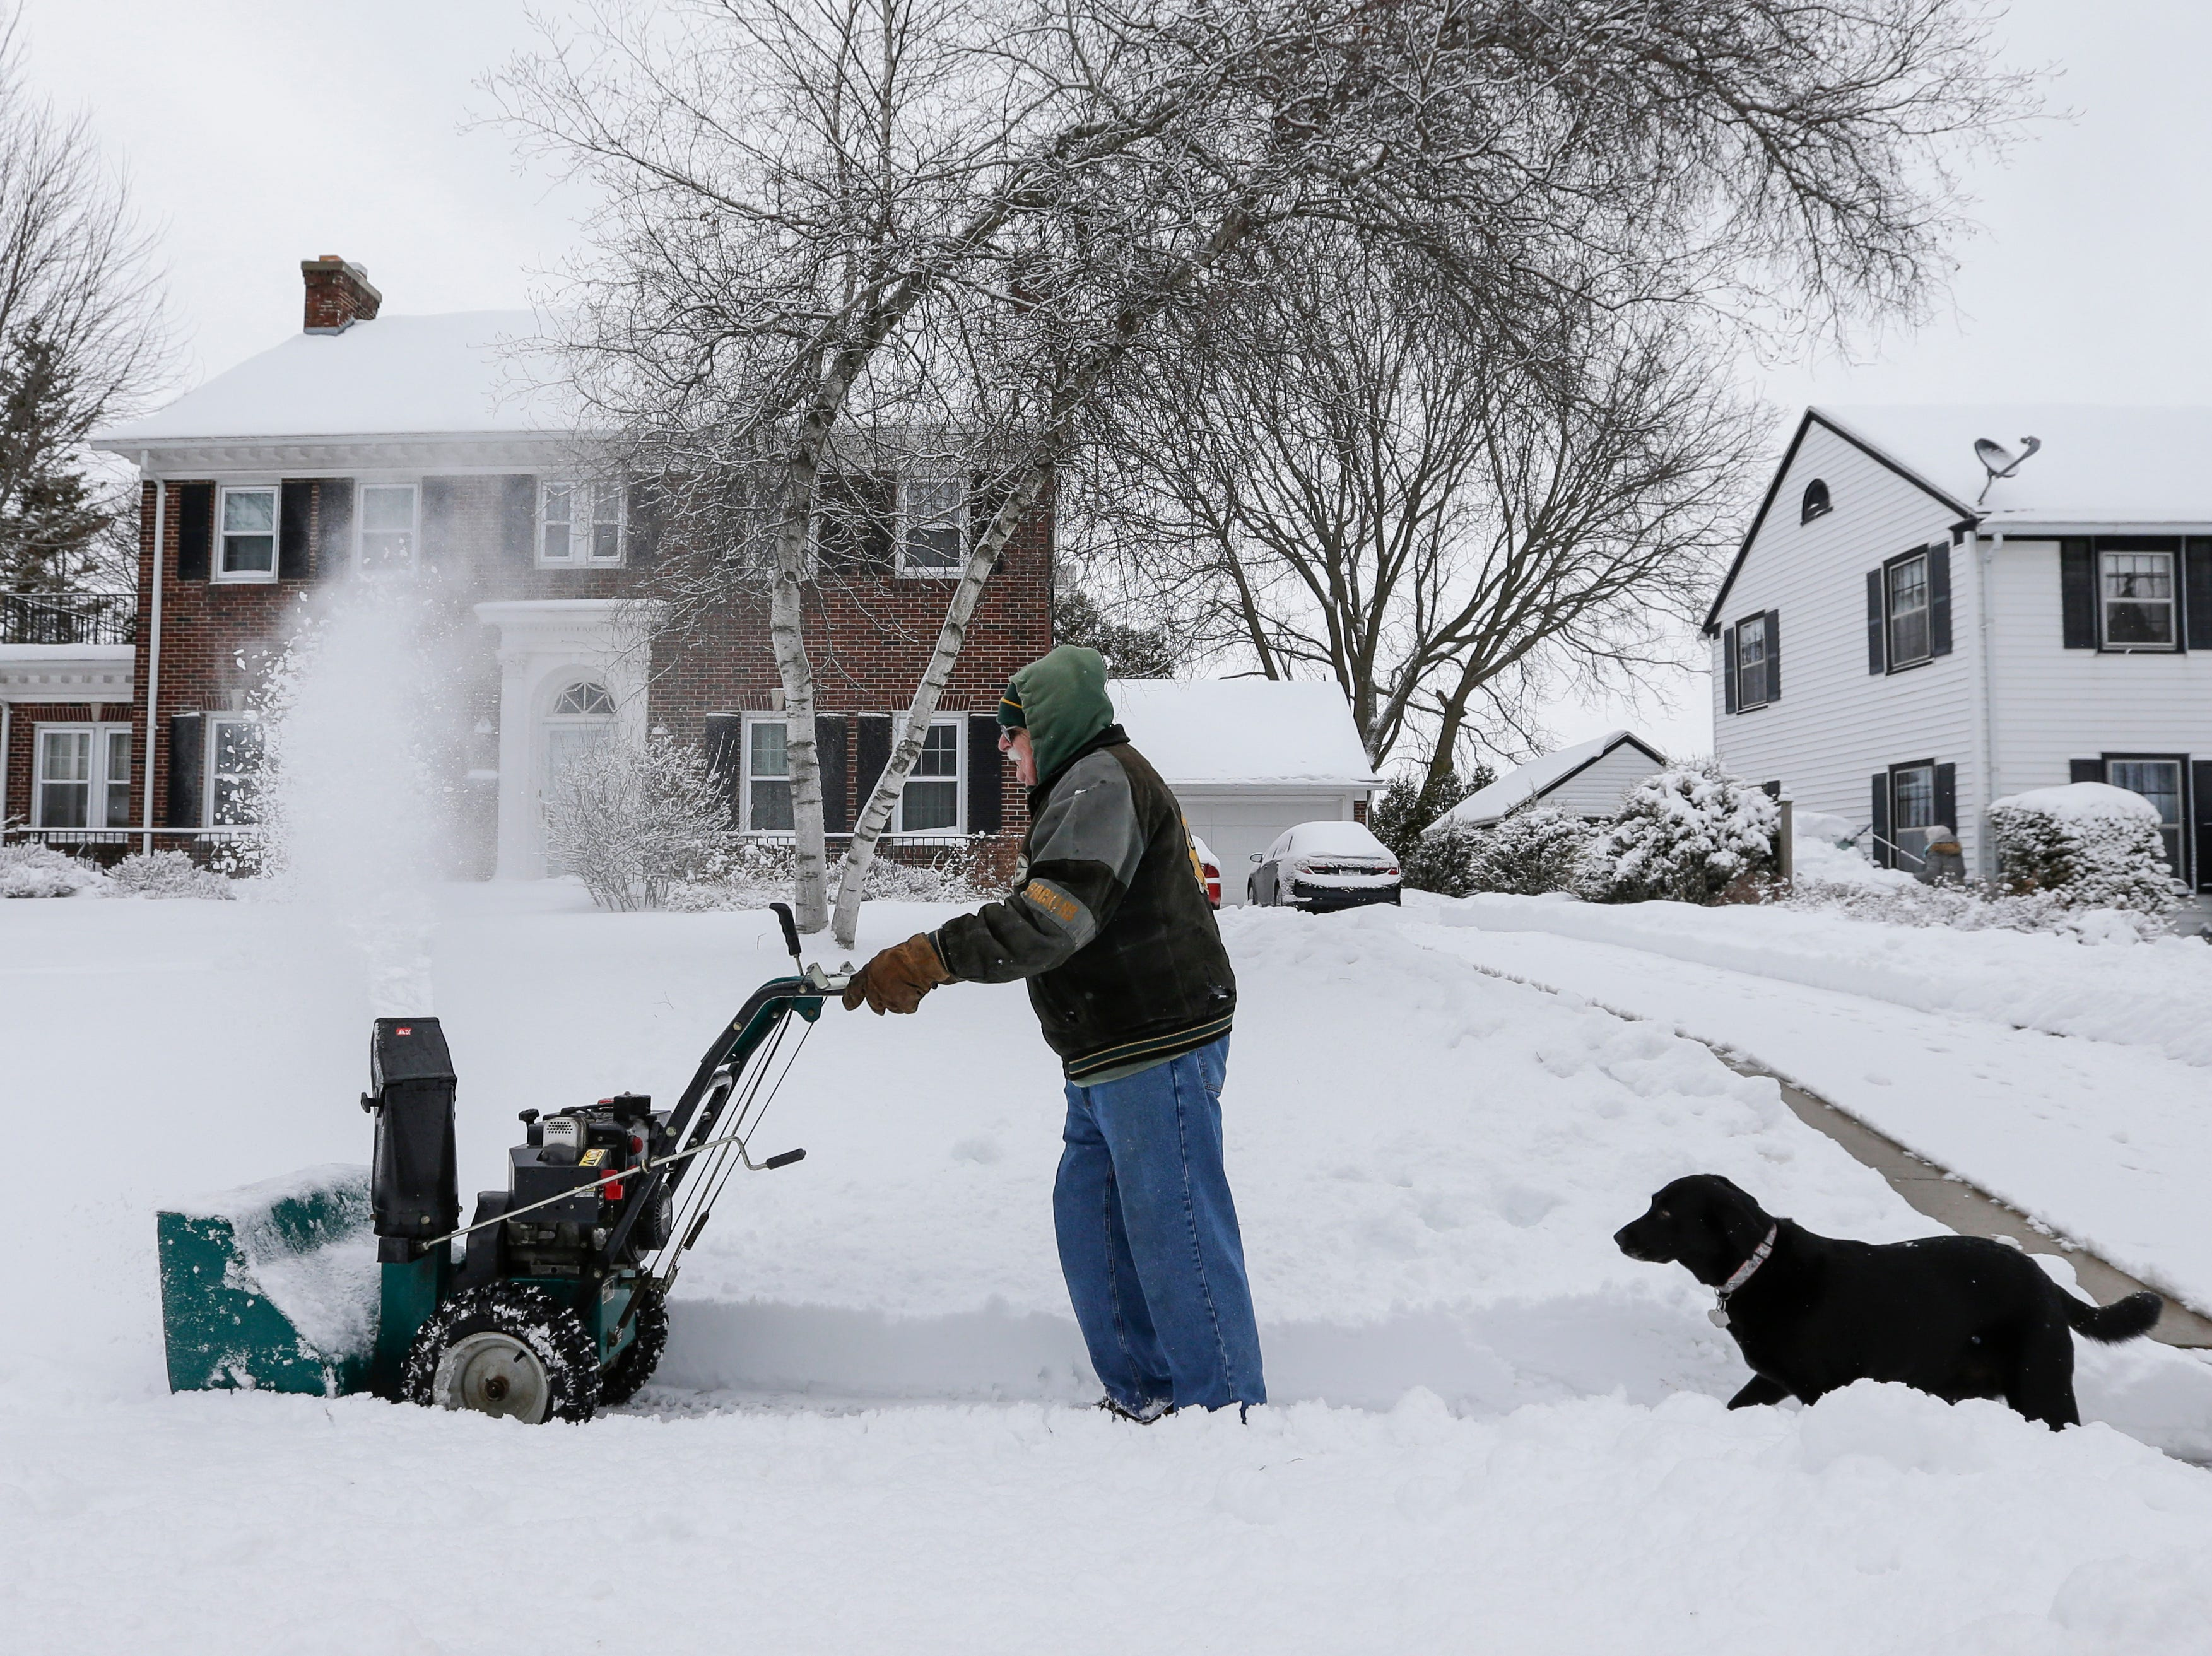 Ernie Swanson snow-blows his neighbor's sidewalk with his dog Rosie after winter storm Evelyn Monday, Apr. 16, 2018, in Manitowoc, Wis. Josh Clark/USA TODAY NETWORK-Wisconsin